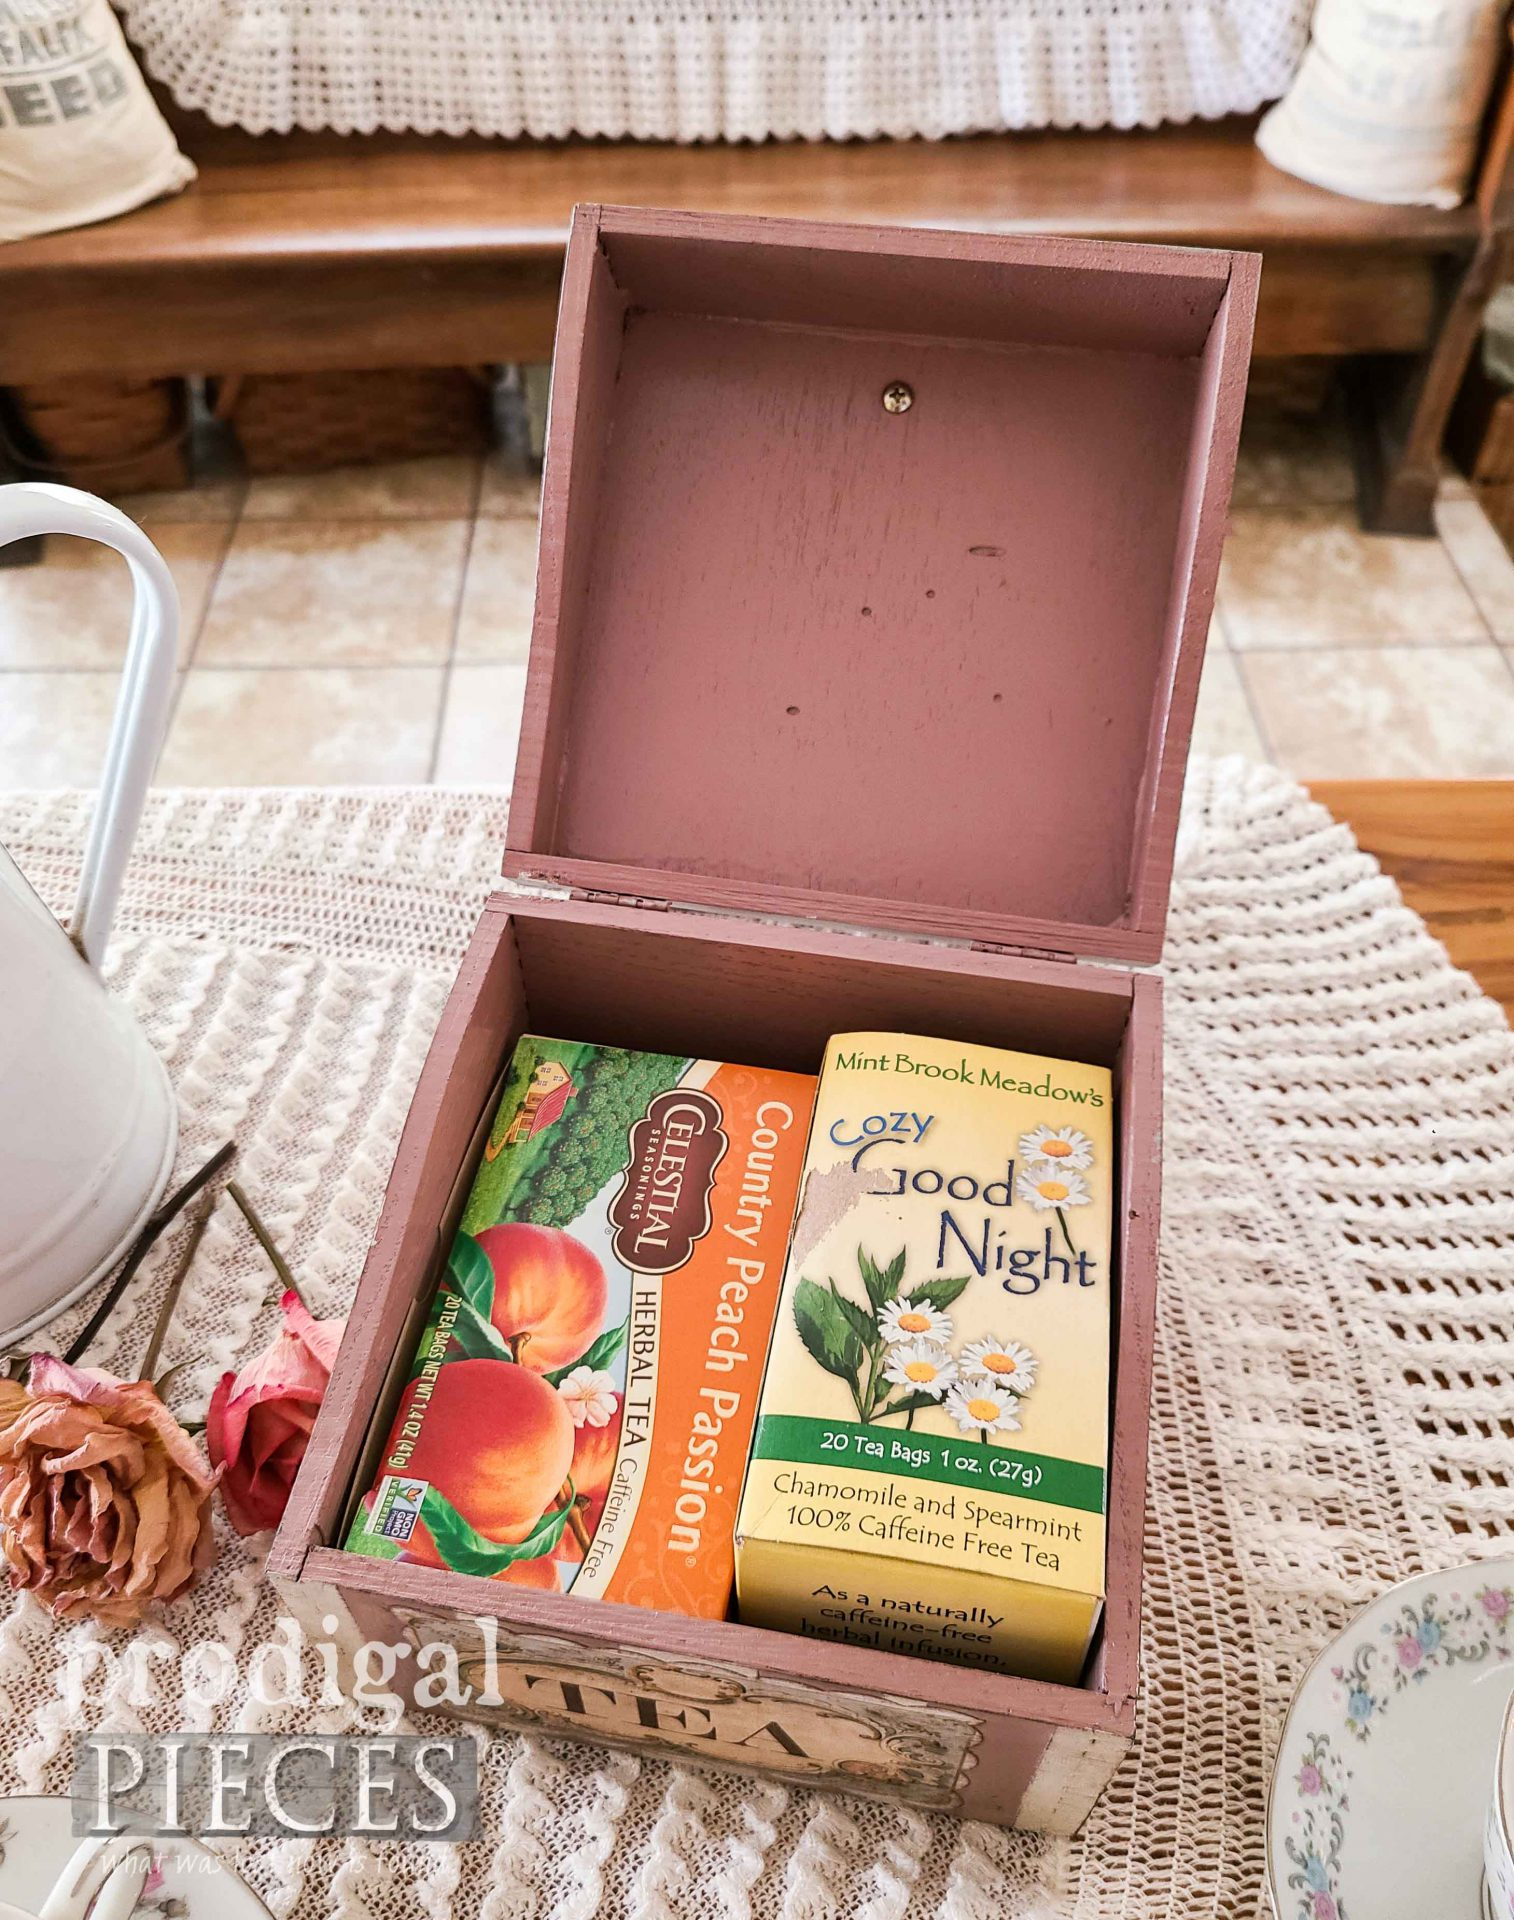 Inside DIY Vintage Tea Box Upcycled by Larissa of Prodigal Pieces | prodigalpieces.com #prodigalpieces #tea #cottage #diy #home